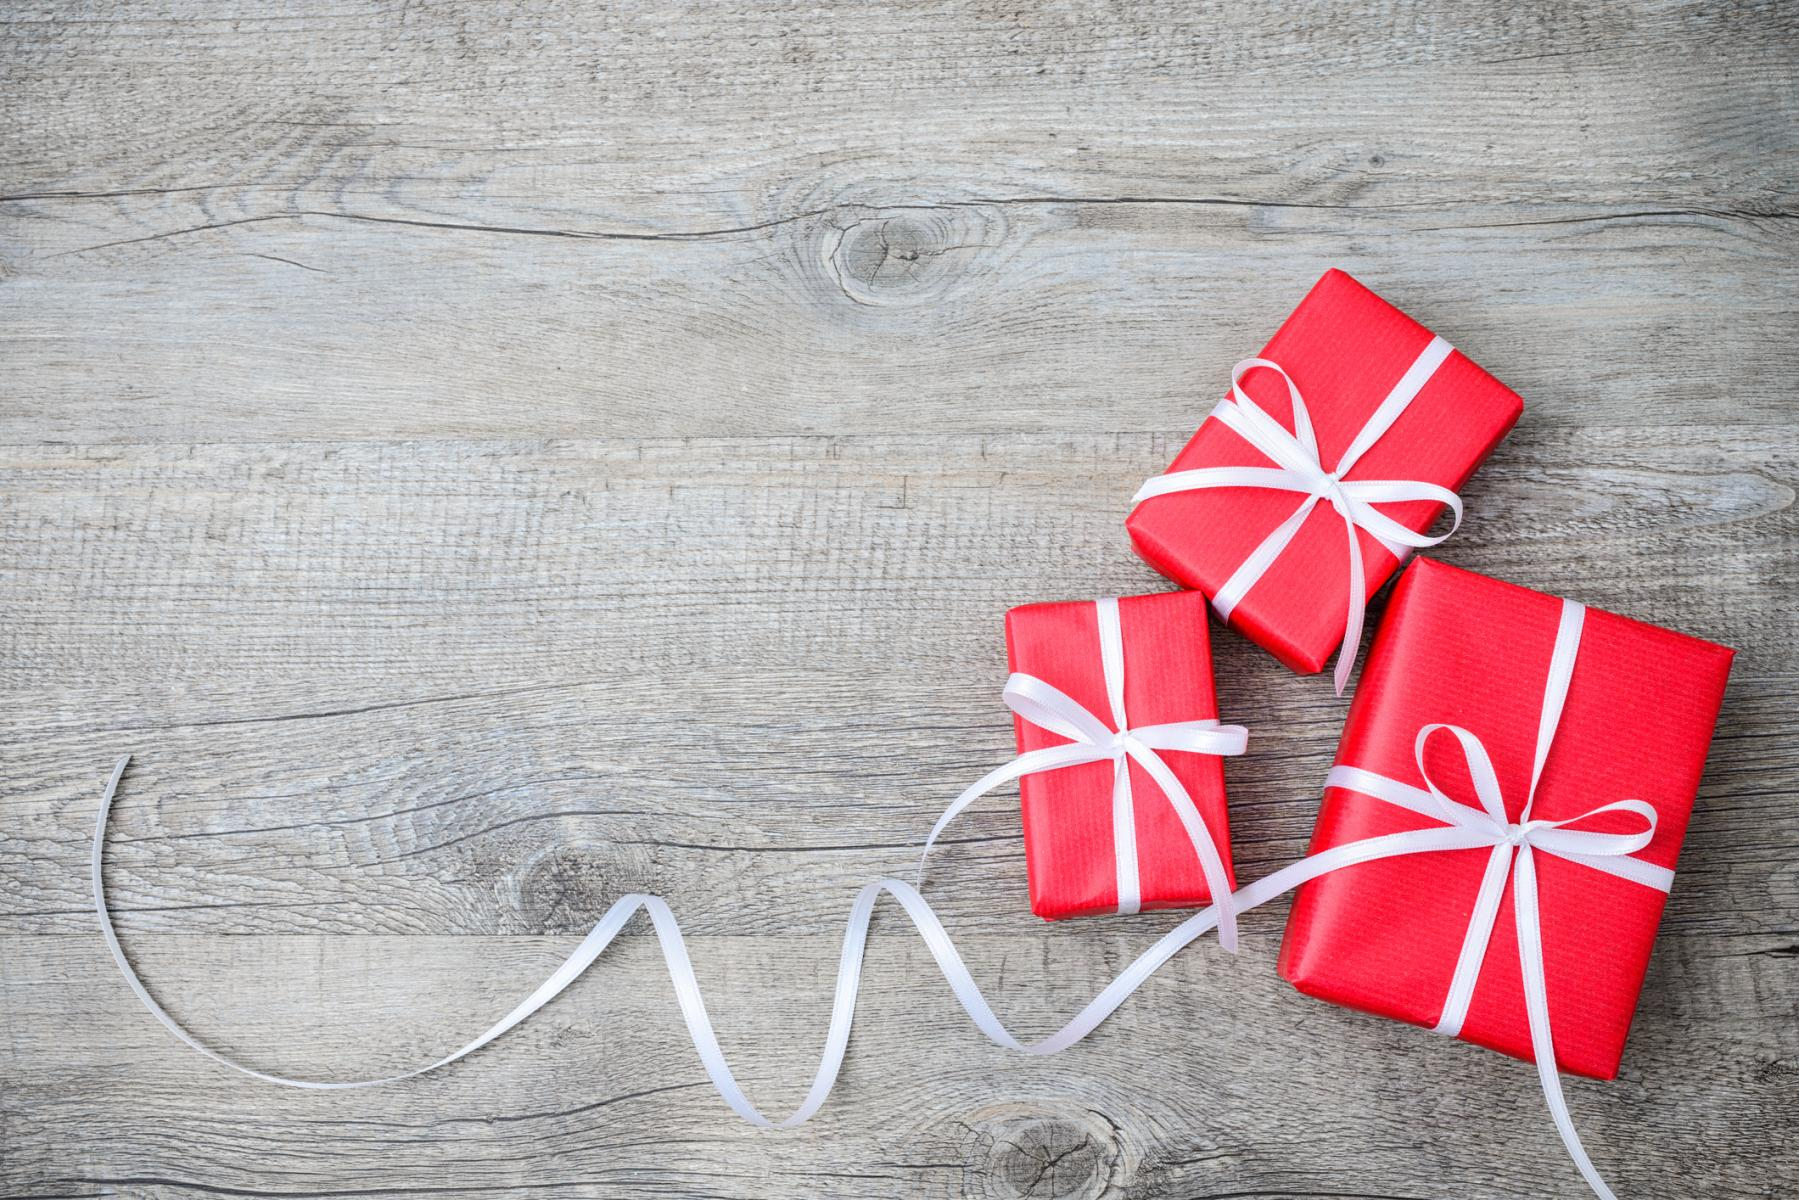 Hack the holidays 7 gift wrapping strategies for busy parents hack the holidays 7 gift wrapping strategies for busy parents parents negle Gallery